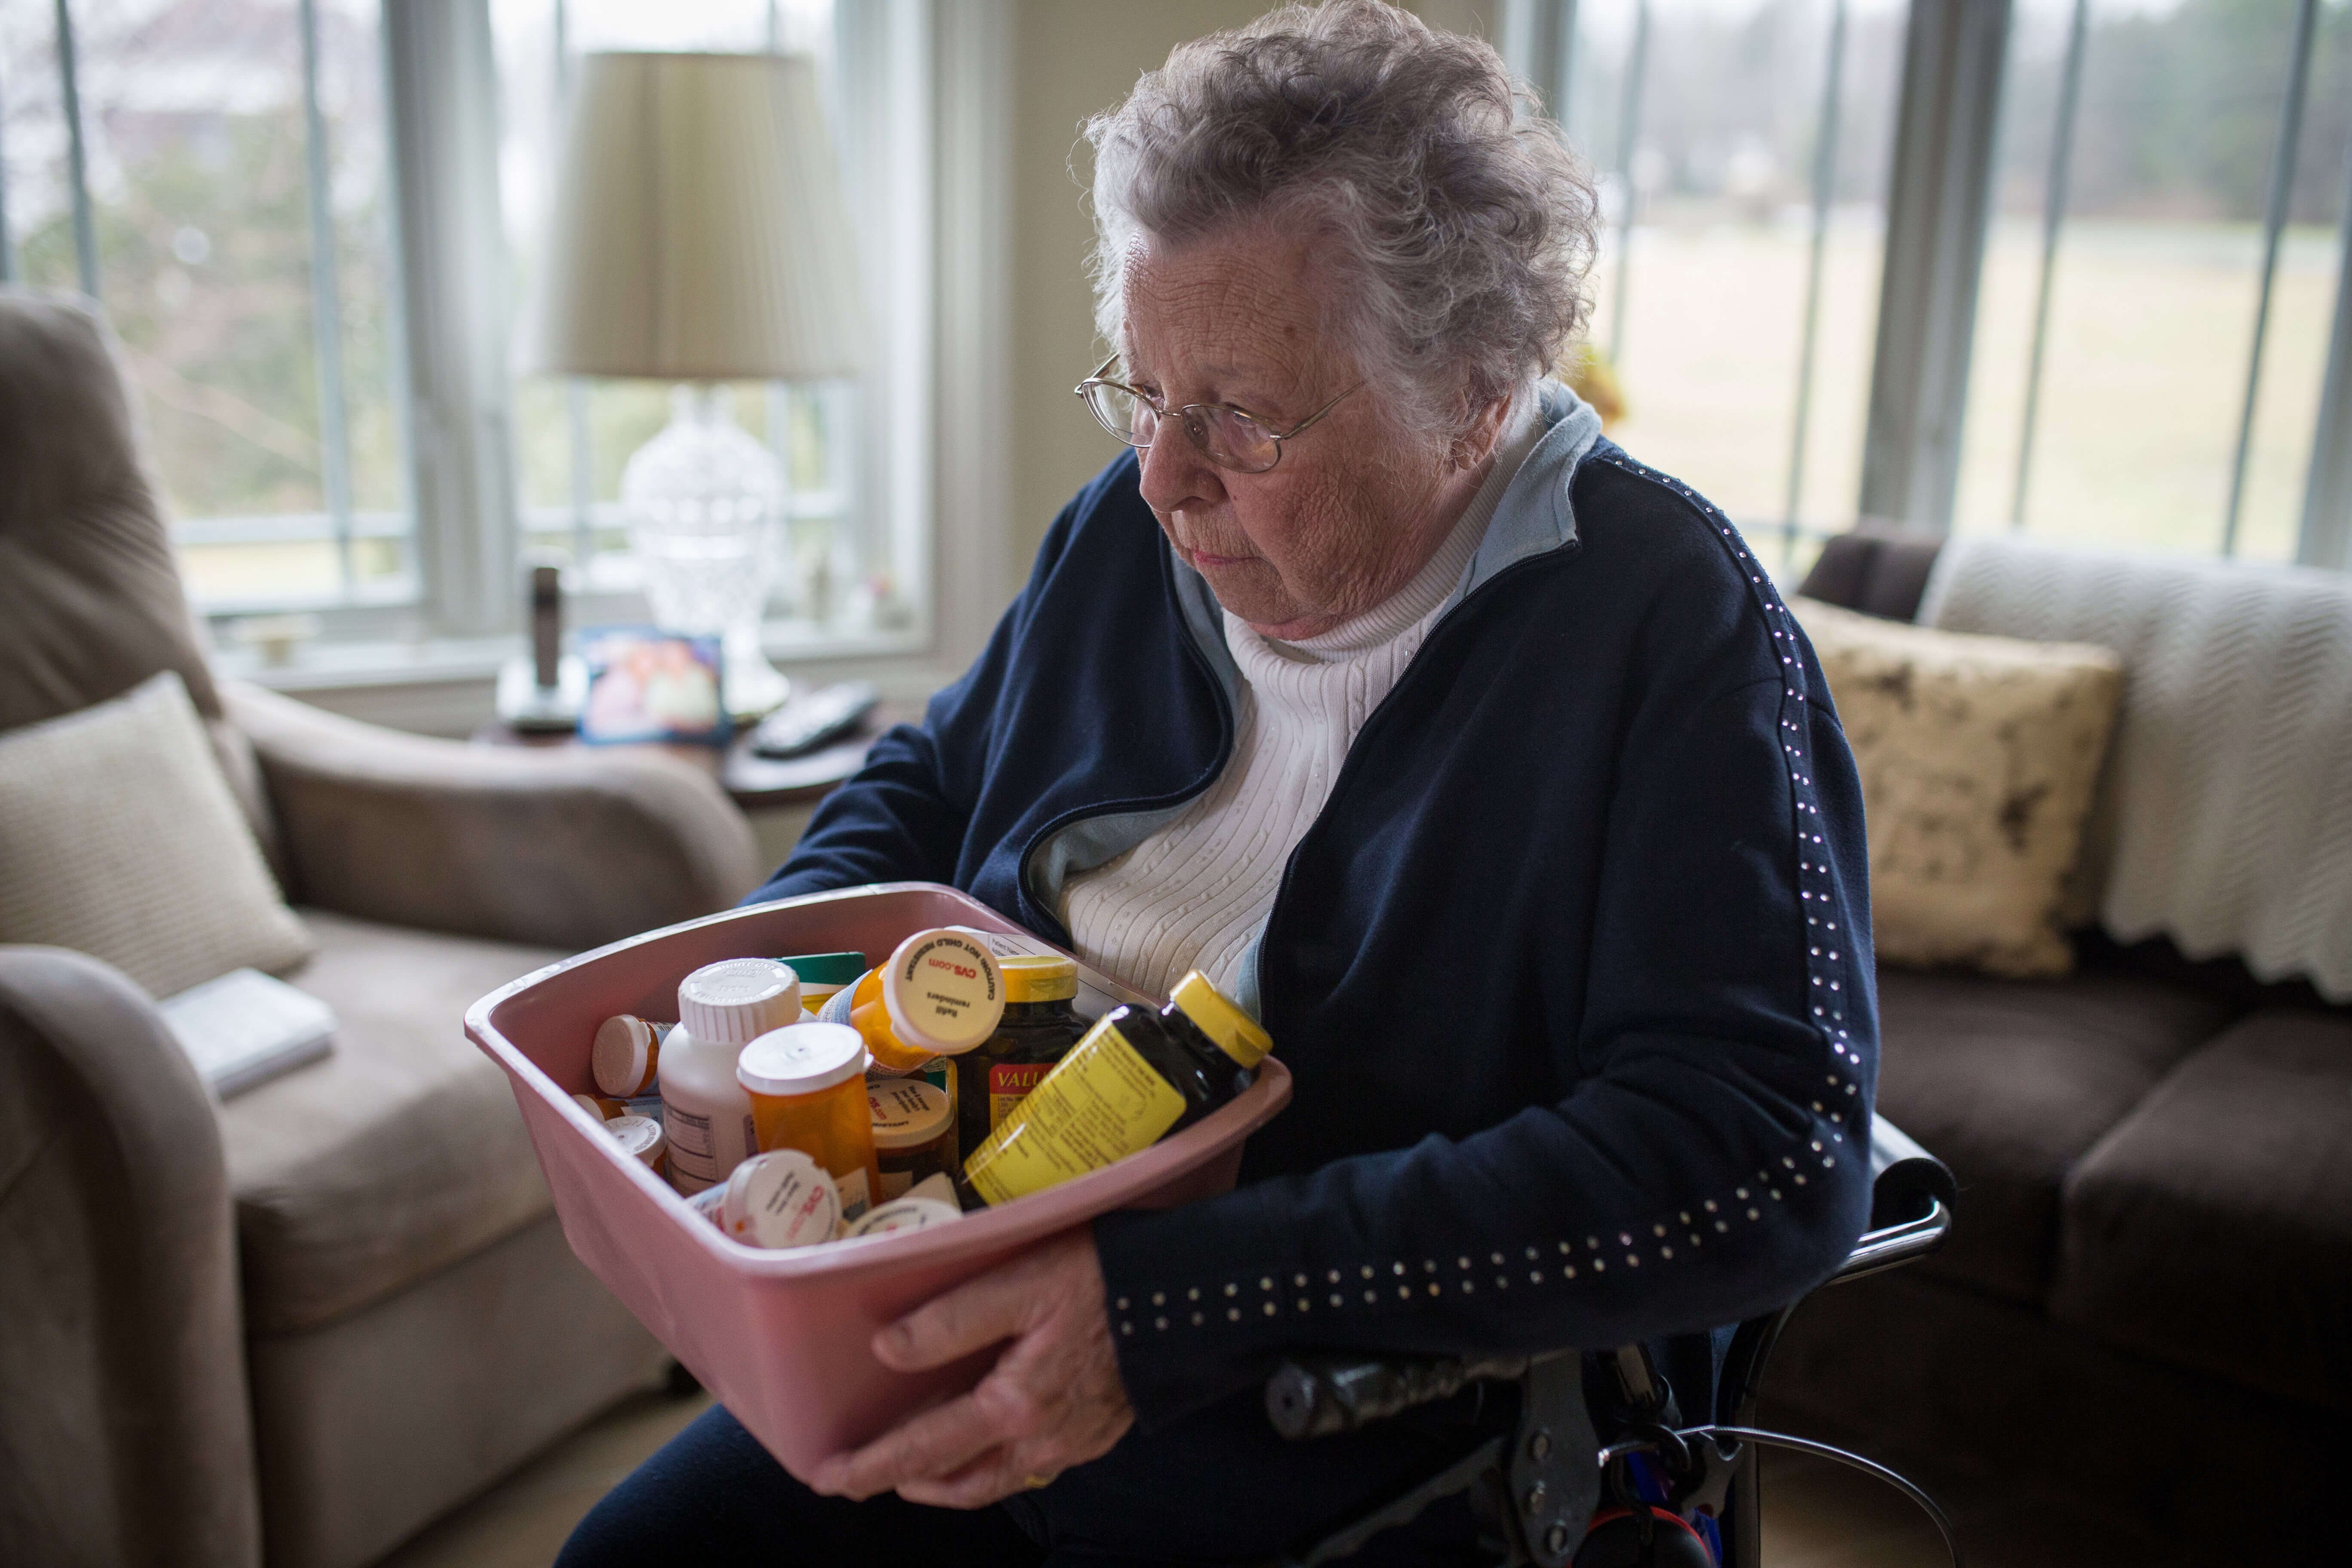 Senior woman holds box of medication in her arms; she needs medication management.